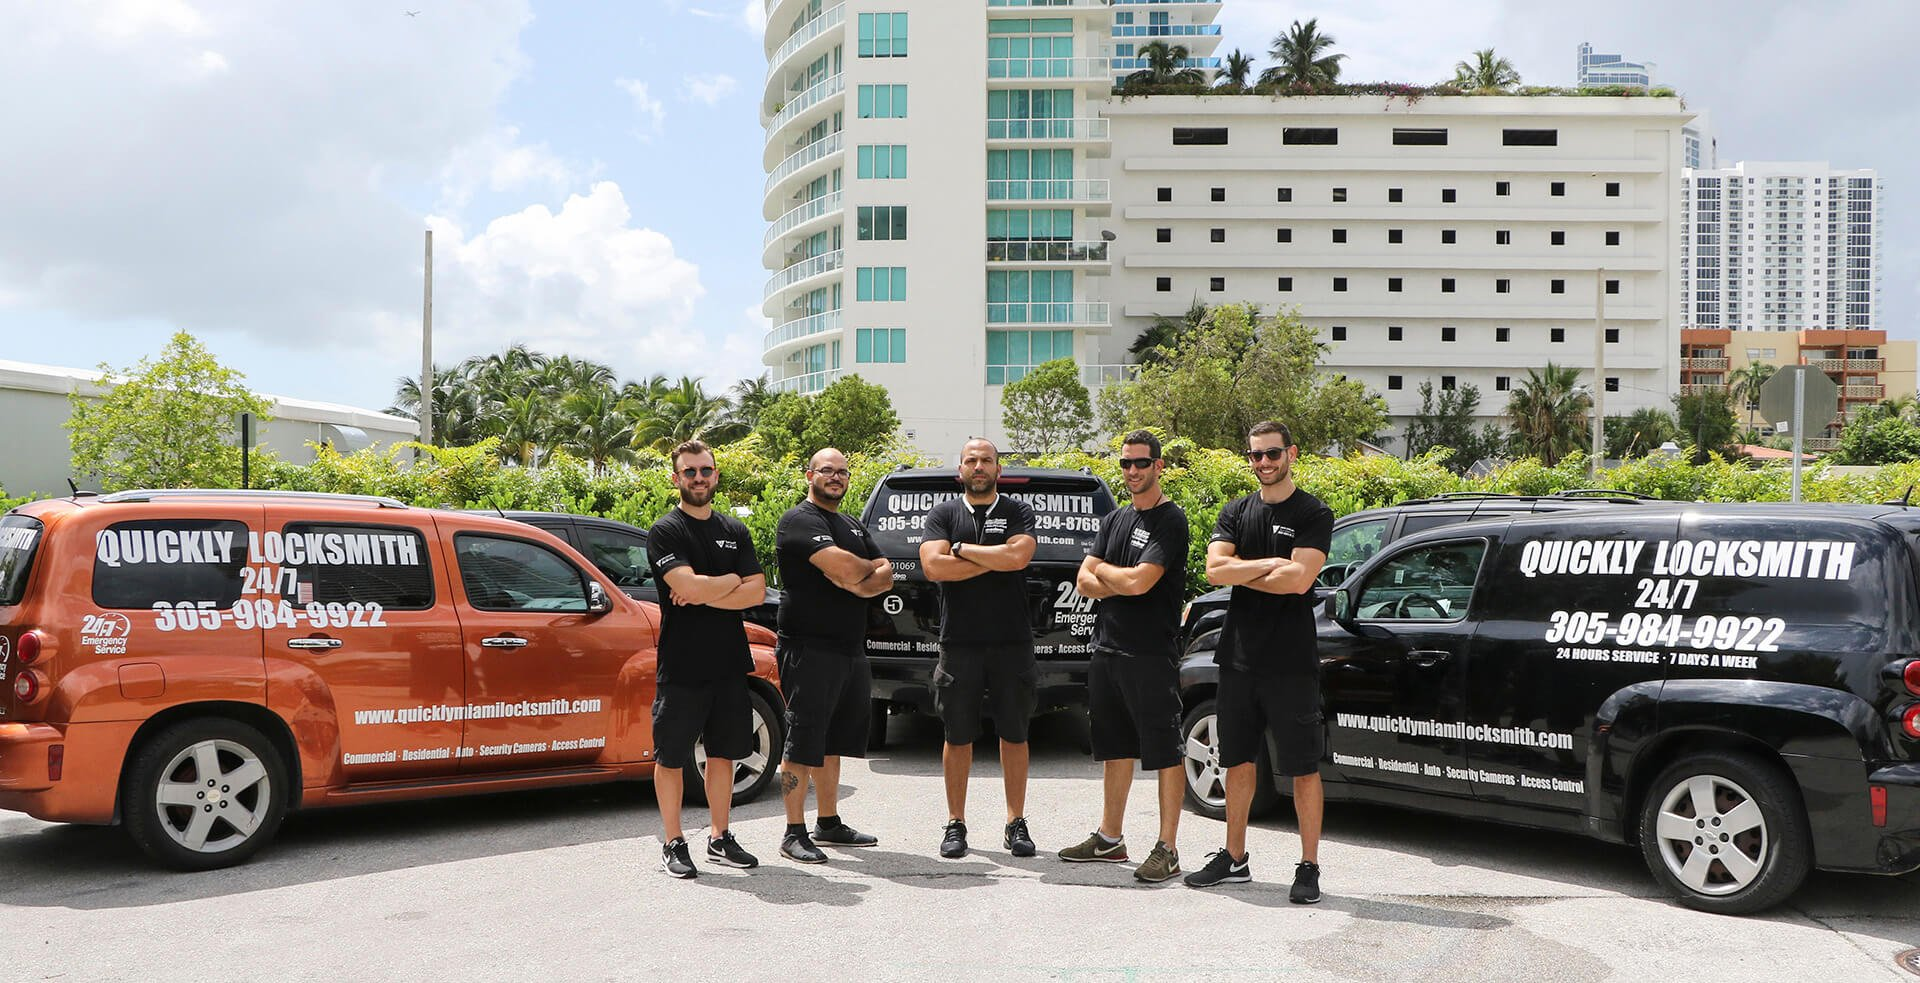 24 Hours Emergency Locksmith Services Miami, Florida   Quickly Locksmith  Miami